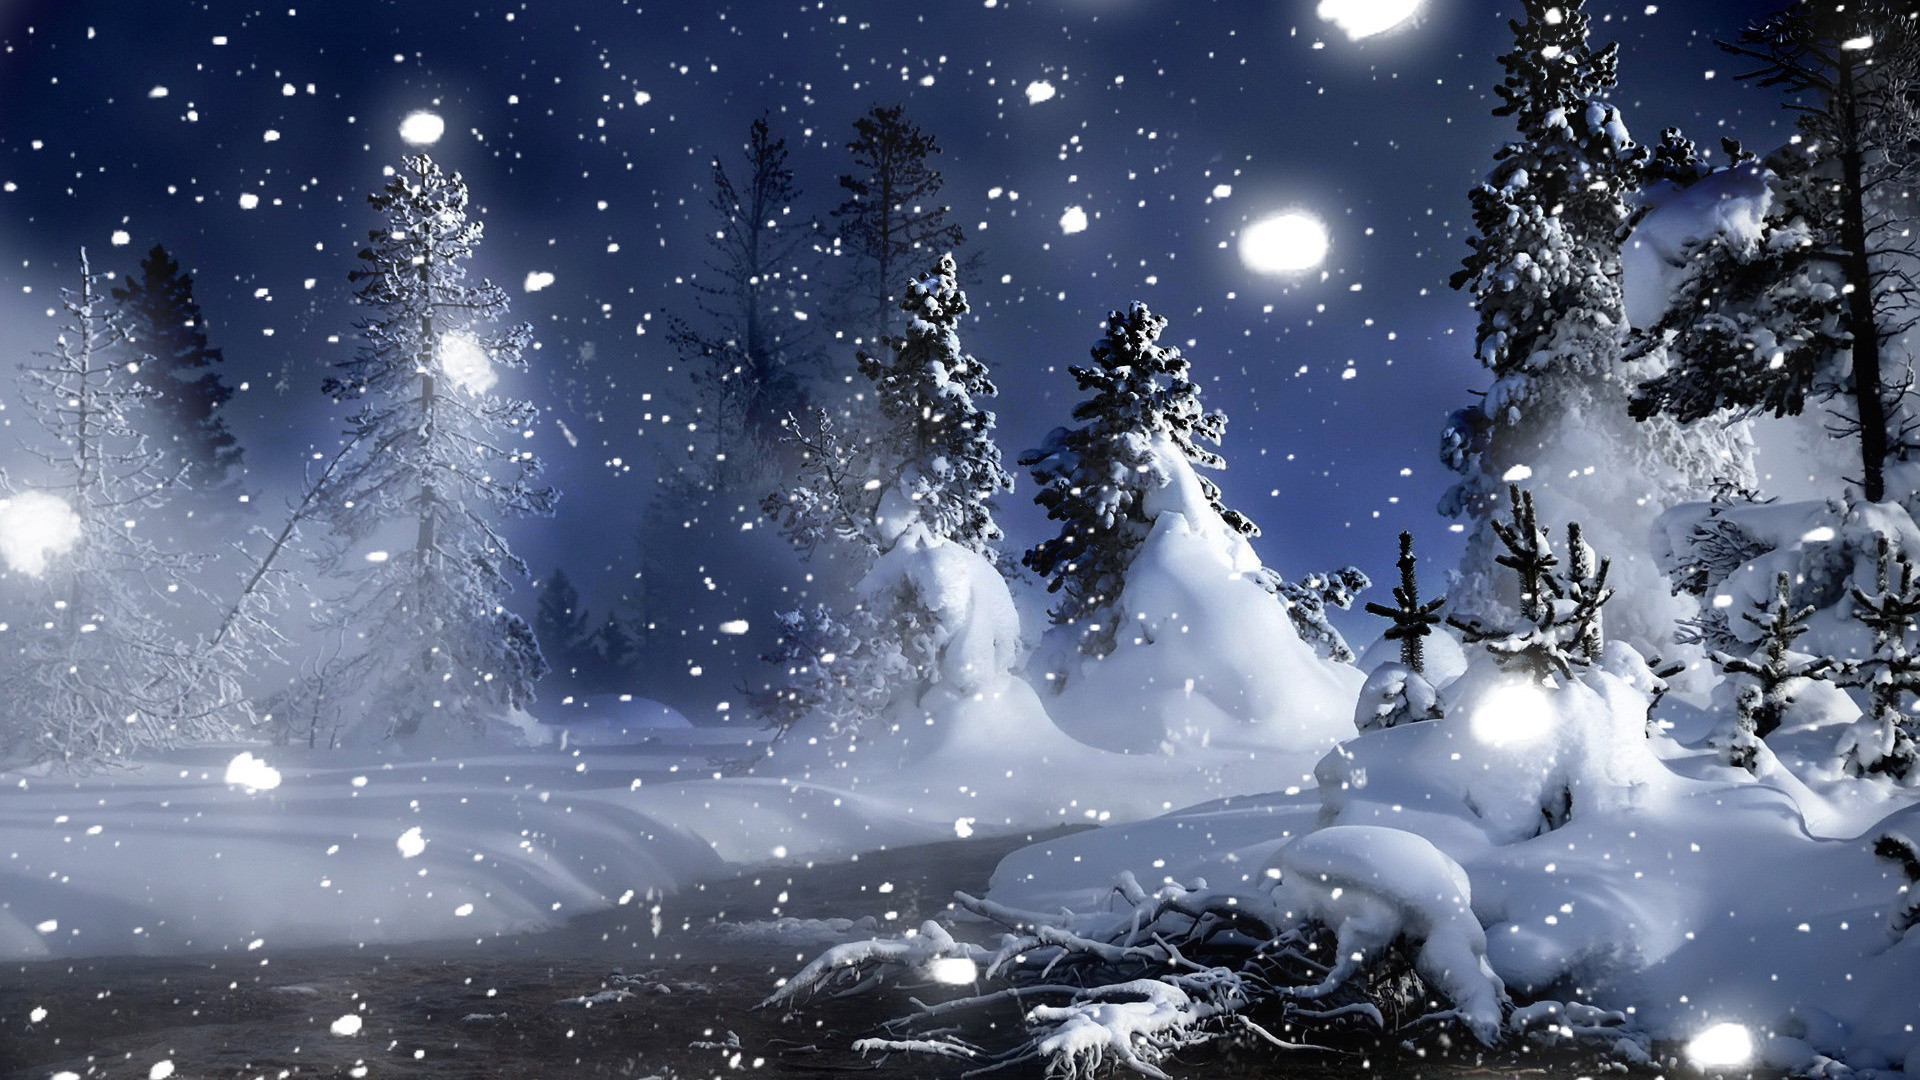 Christmas Winter Wallpapers: Snow Desktop Backgrounds ·①